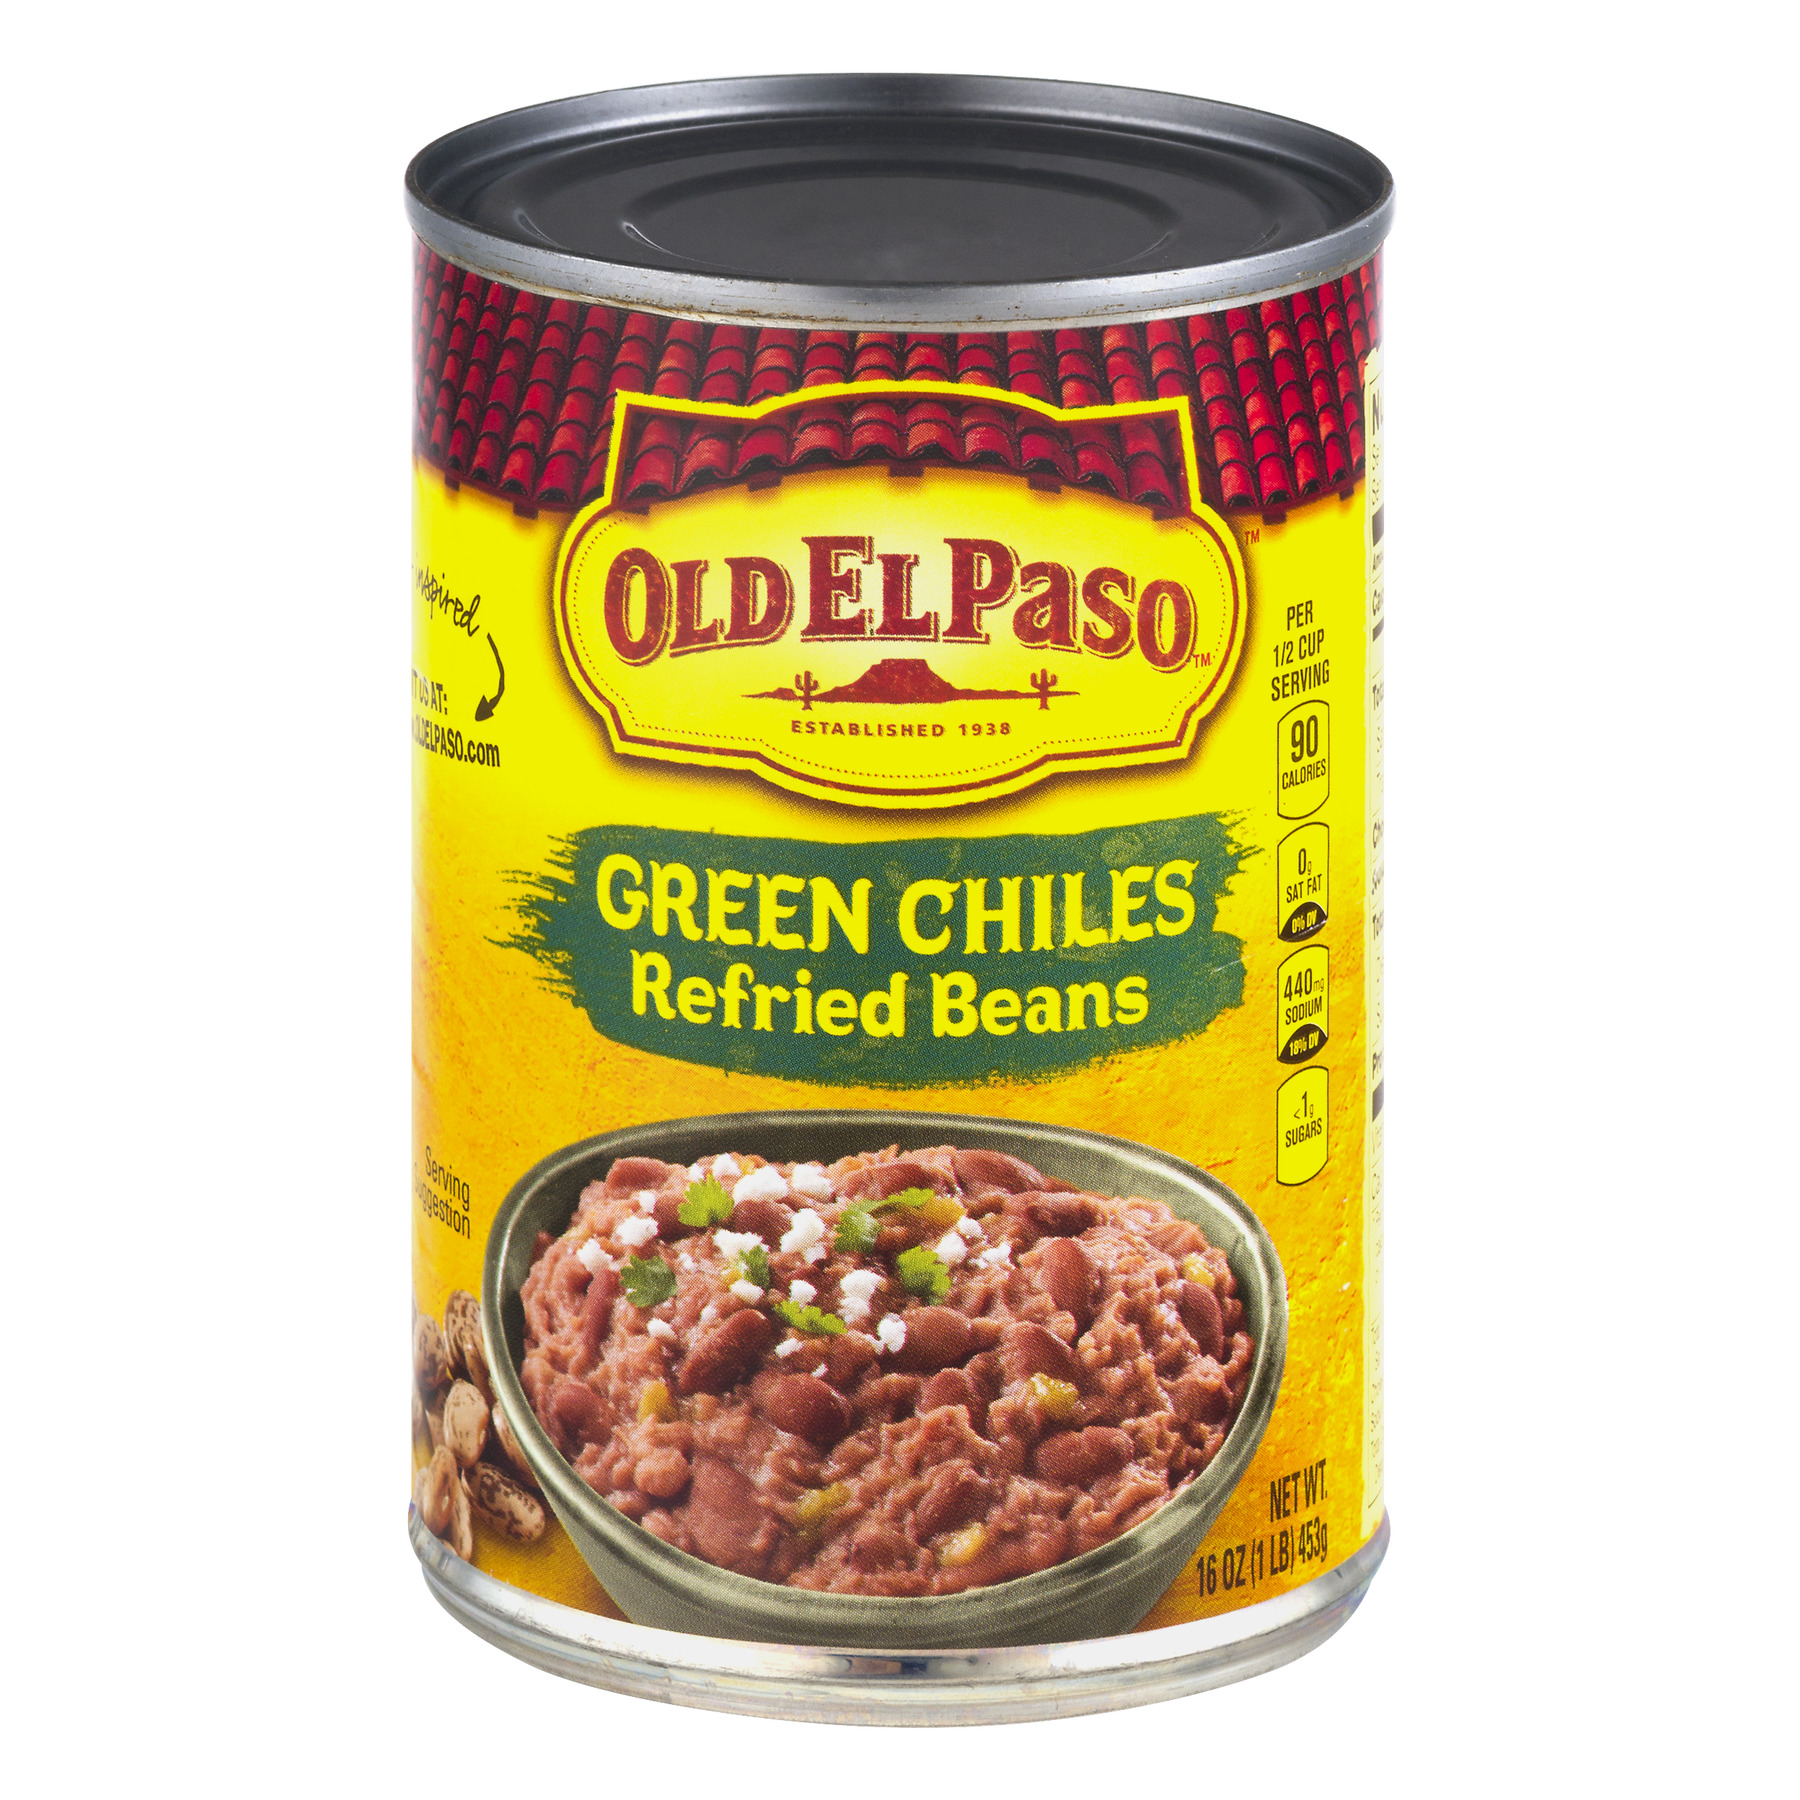 Old El Paso™ Green Chiles Refried Beans 16 oz